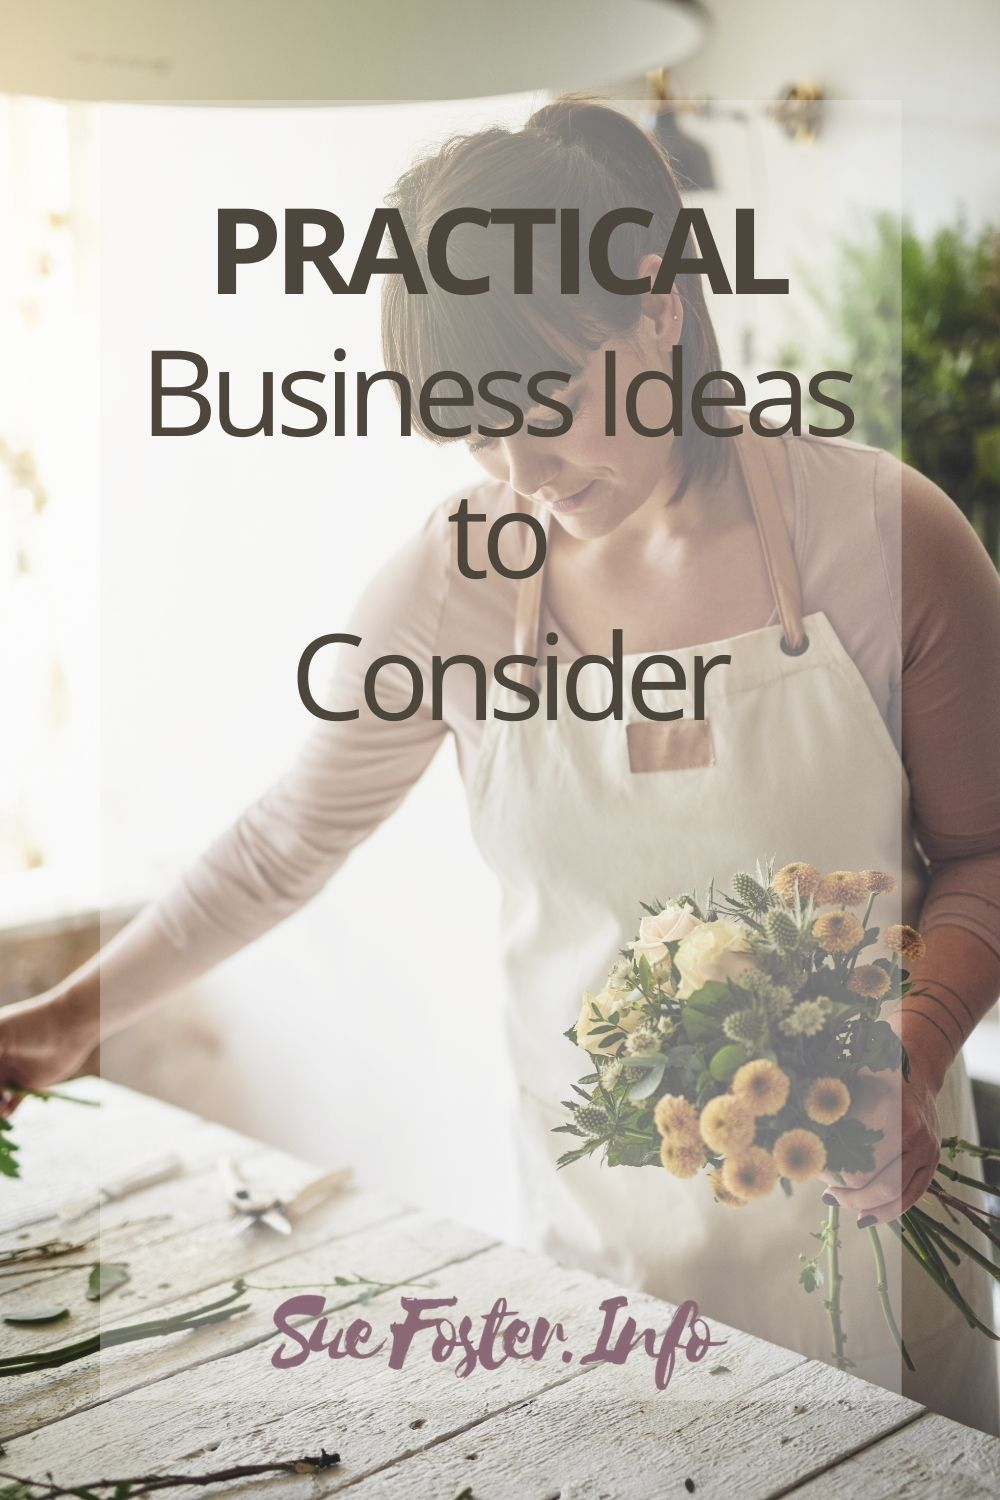 Practical business ideas to consider